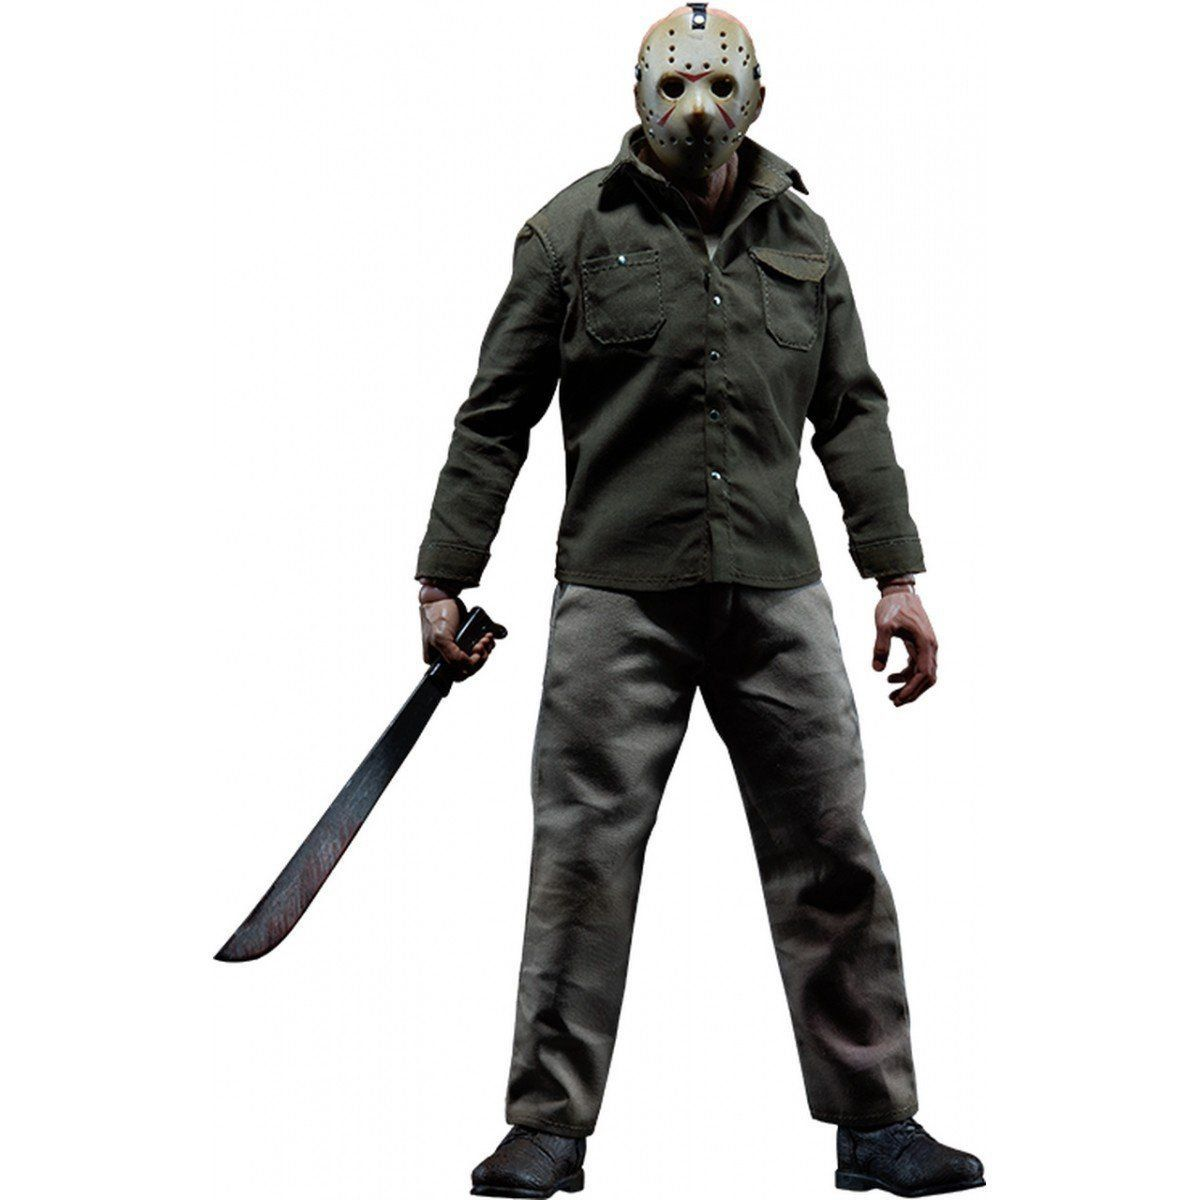 Boneco Jason Voorhees: Sexta-Feira 13 (Friday The 13th) Escala 1/6 - Sideshow - CD